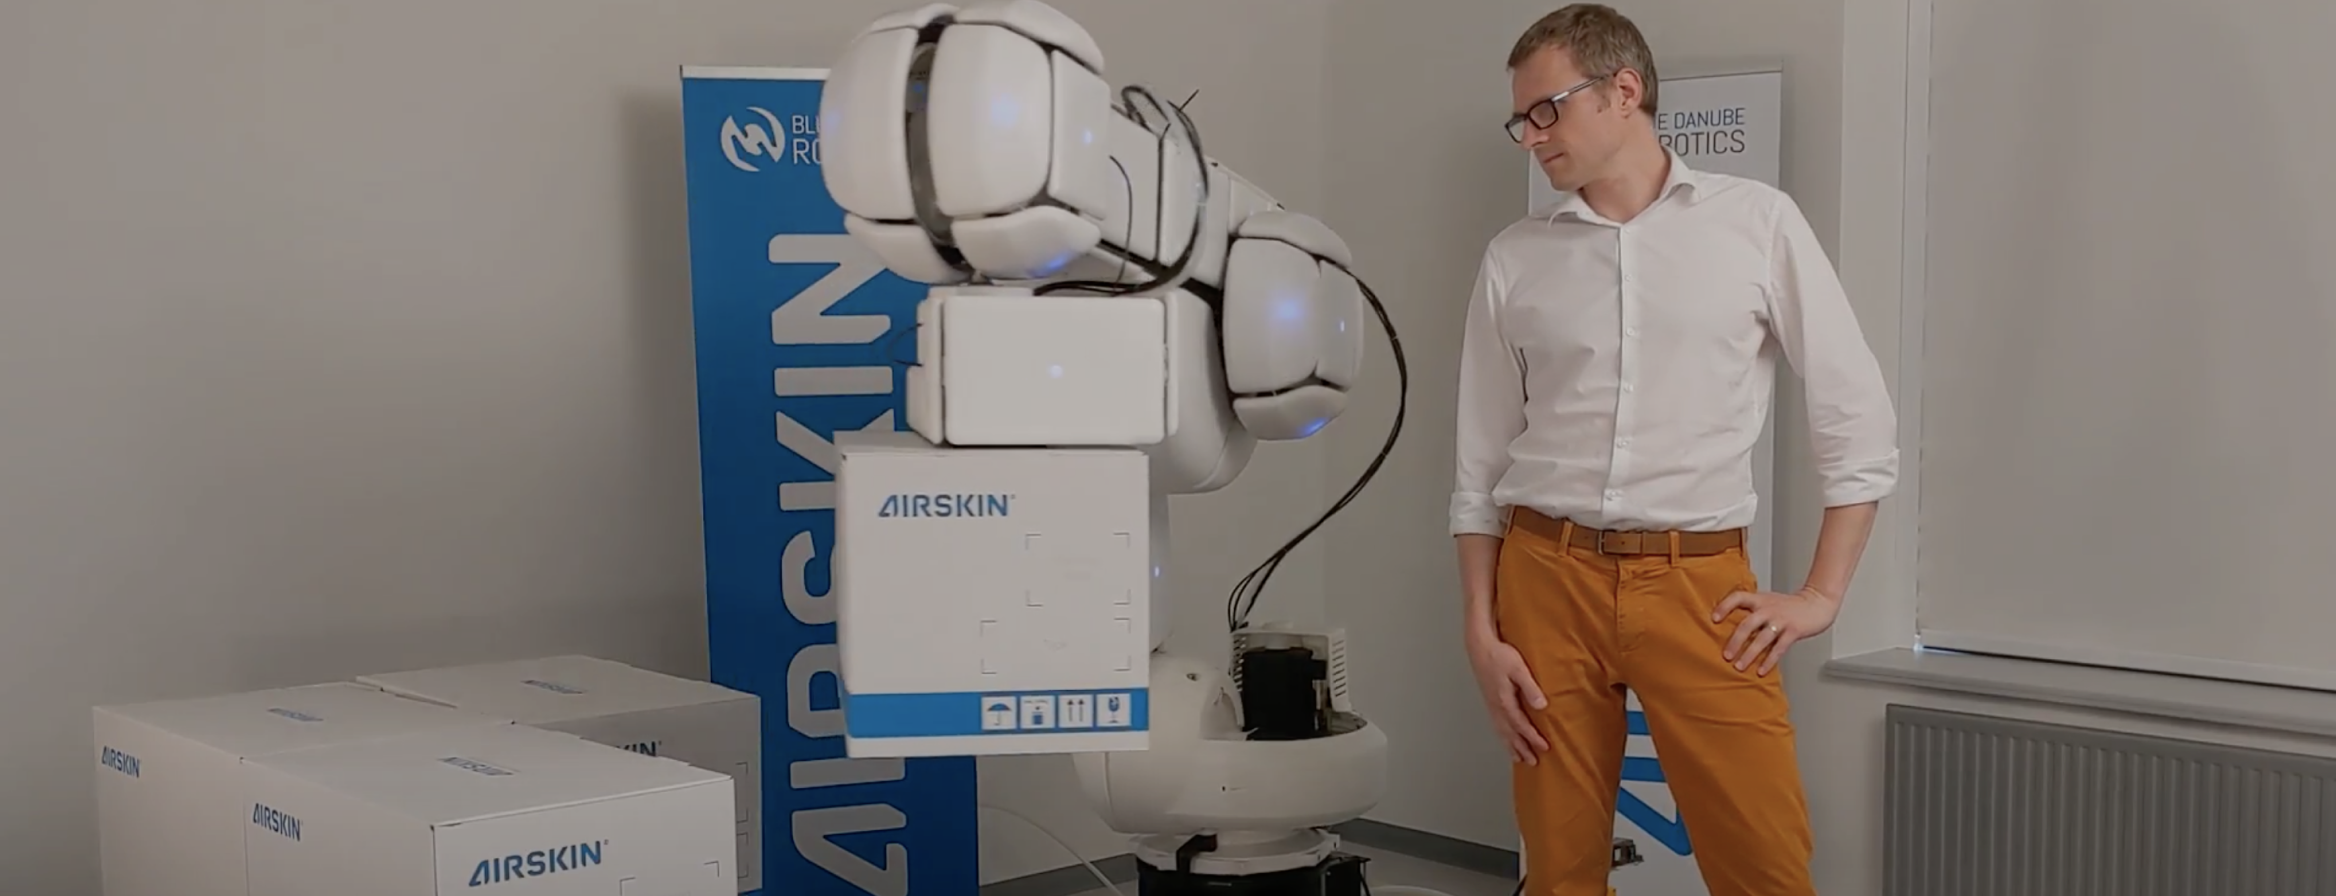 Robot with soft AIRSKIN and man studying the product